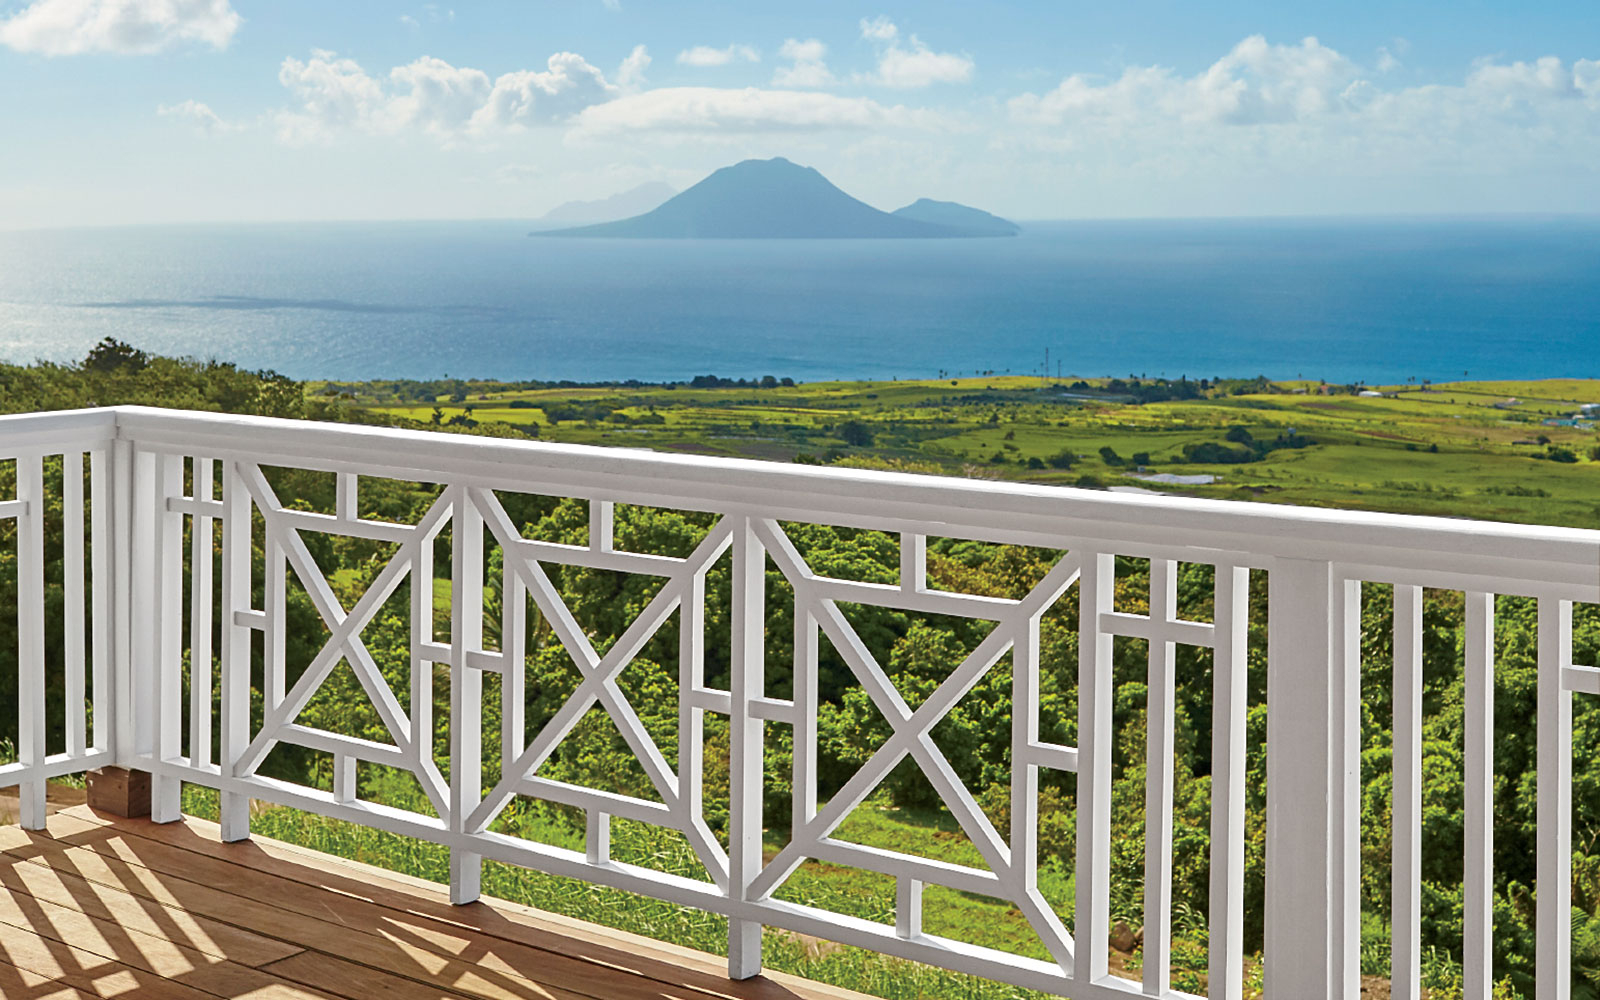 Caribbean Island Deals: St. Kitts, Antigua, and More